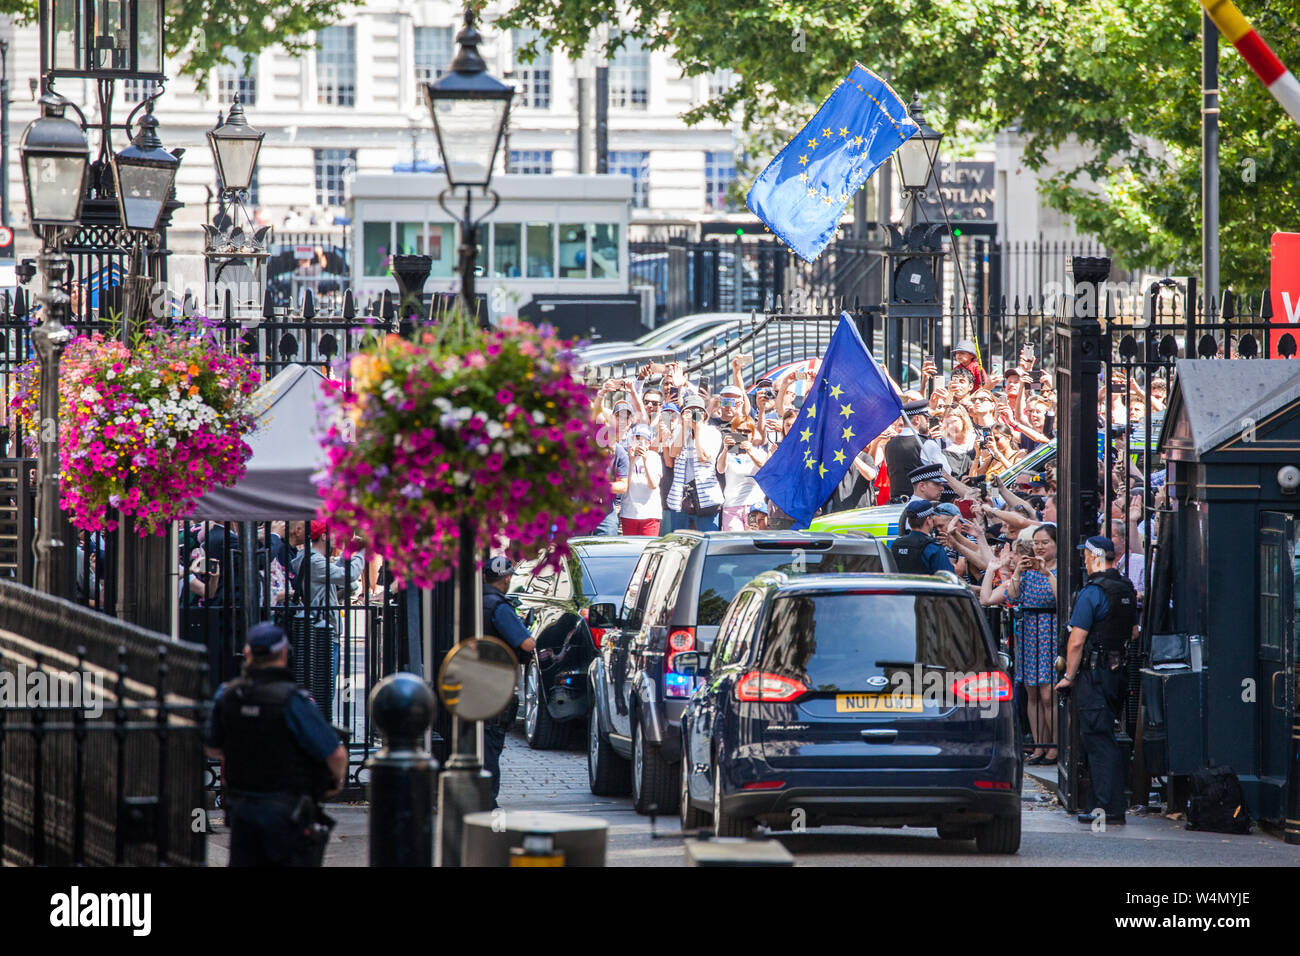 London, UK. 24 July, 2019. Theresa May, accompanied by her husband Philip, leaves Downing Street to proceed to Buckingham Palace to tender her resignation to the Queen. Credit: Mark Kerrison/Alamy Live News Stock Photo